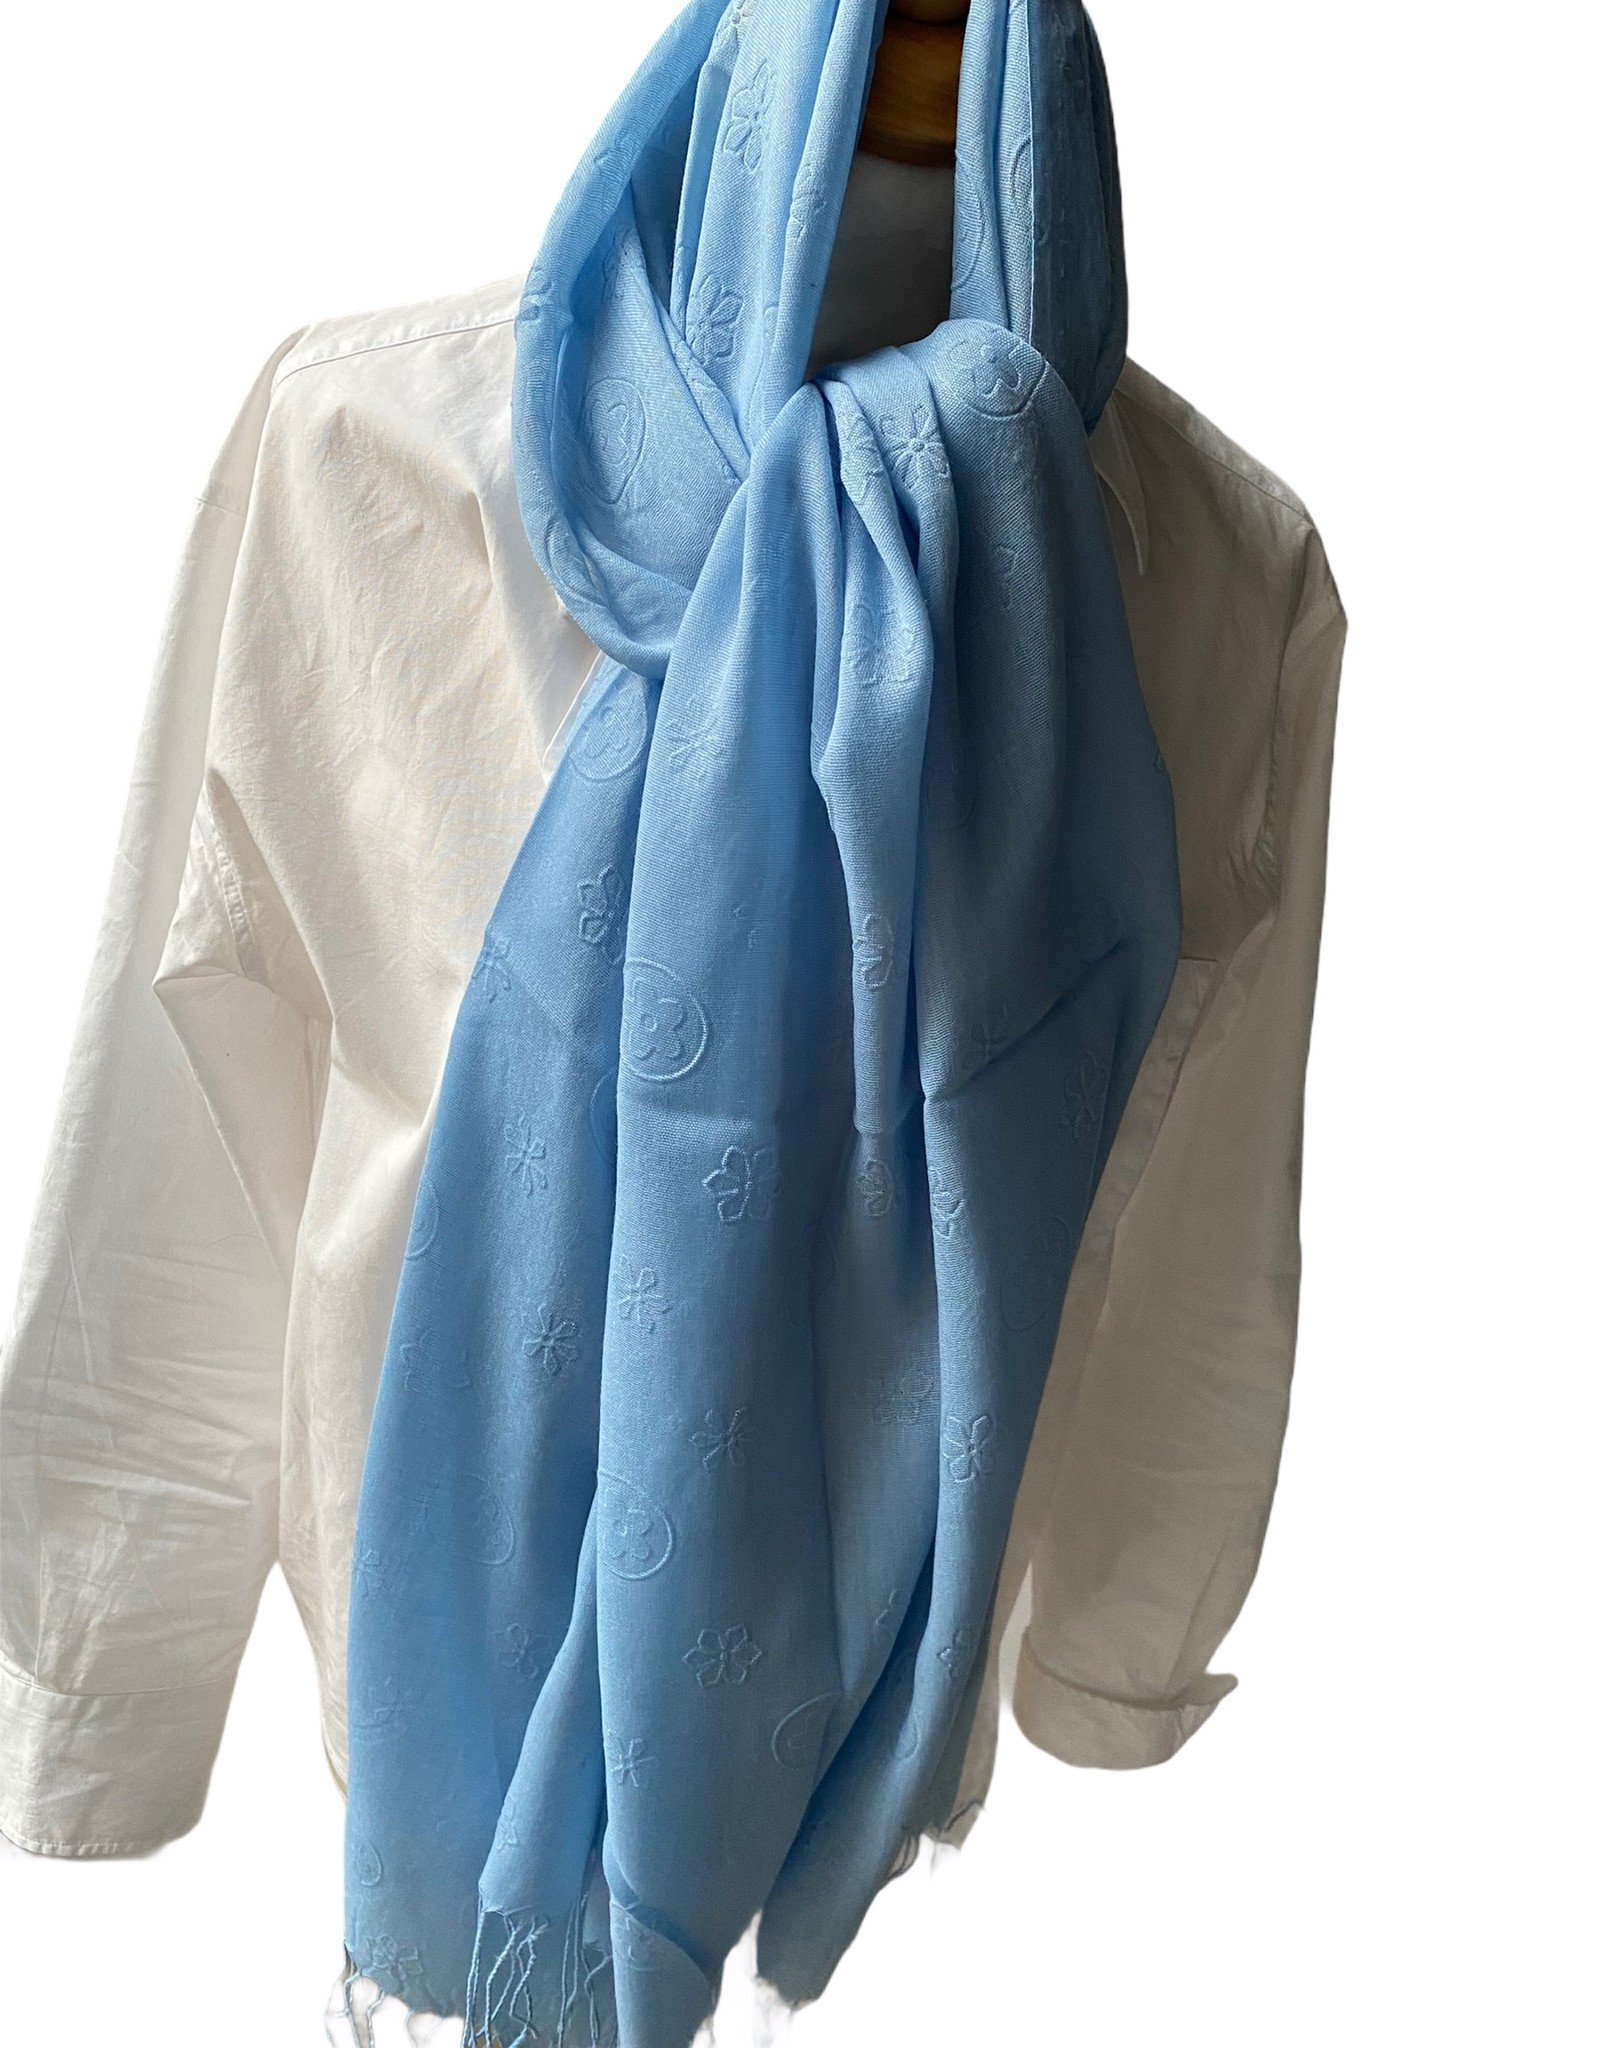 Cotonscarf in light blue with print ton sur ton.